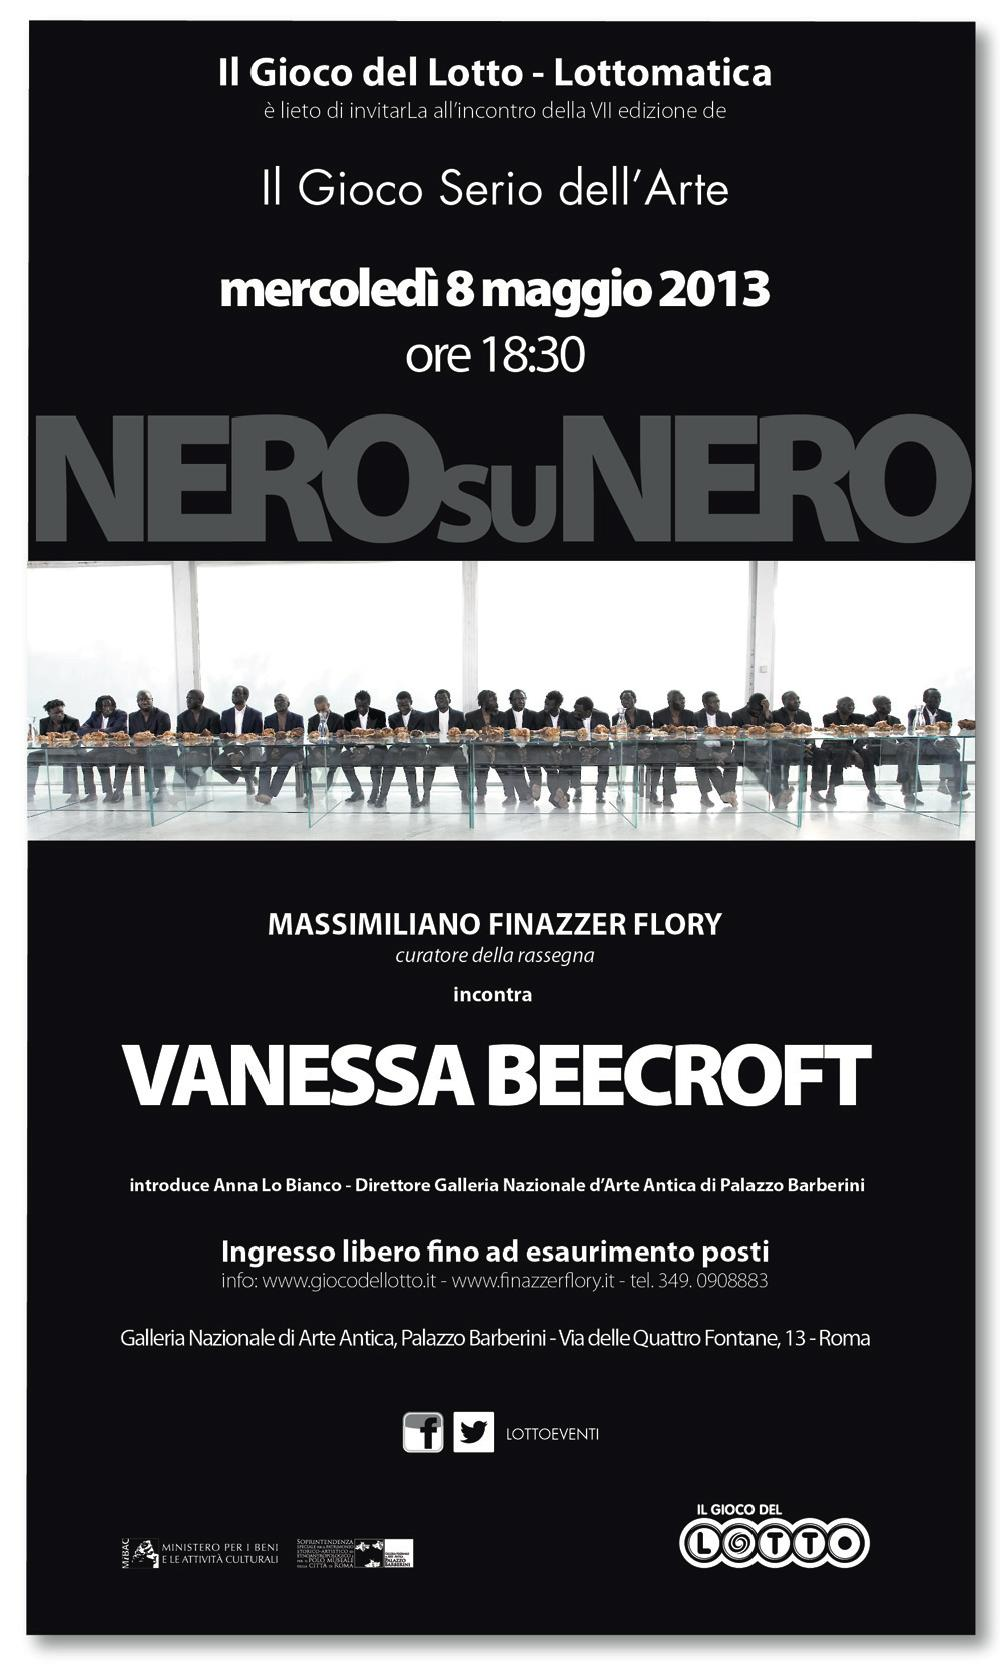 Invito evento Vanessa Beecroft